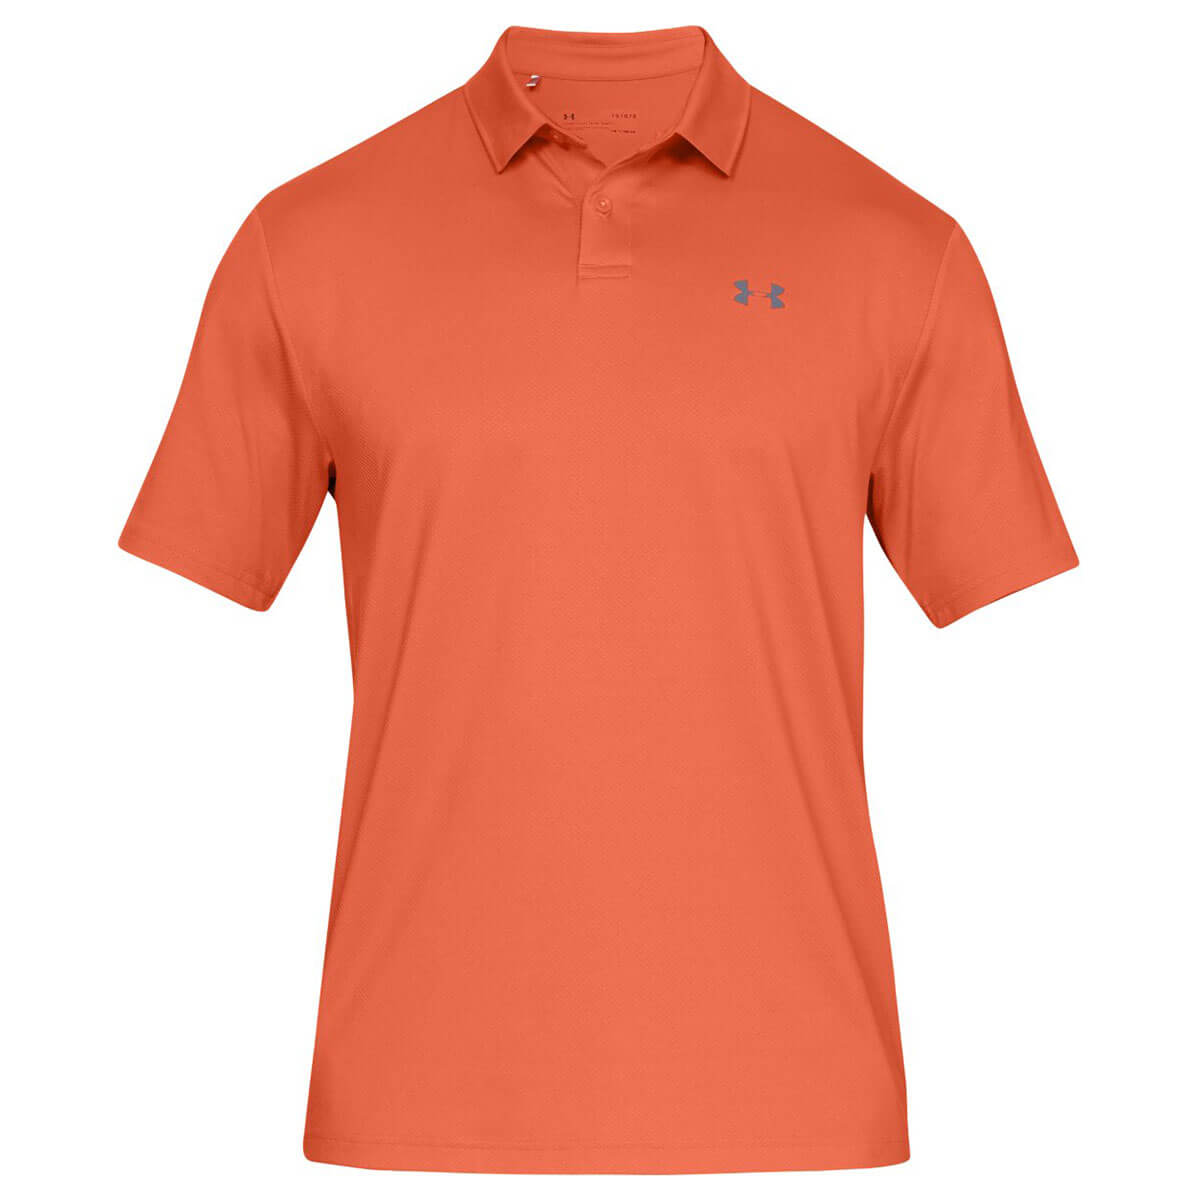 Under-Armour-Mens-2019-Performance-2-0-Stretch-Durable-Smooth-Golf-Polo-Shirt thumbnail 36